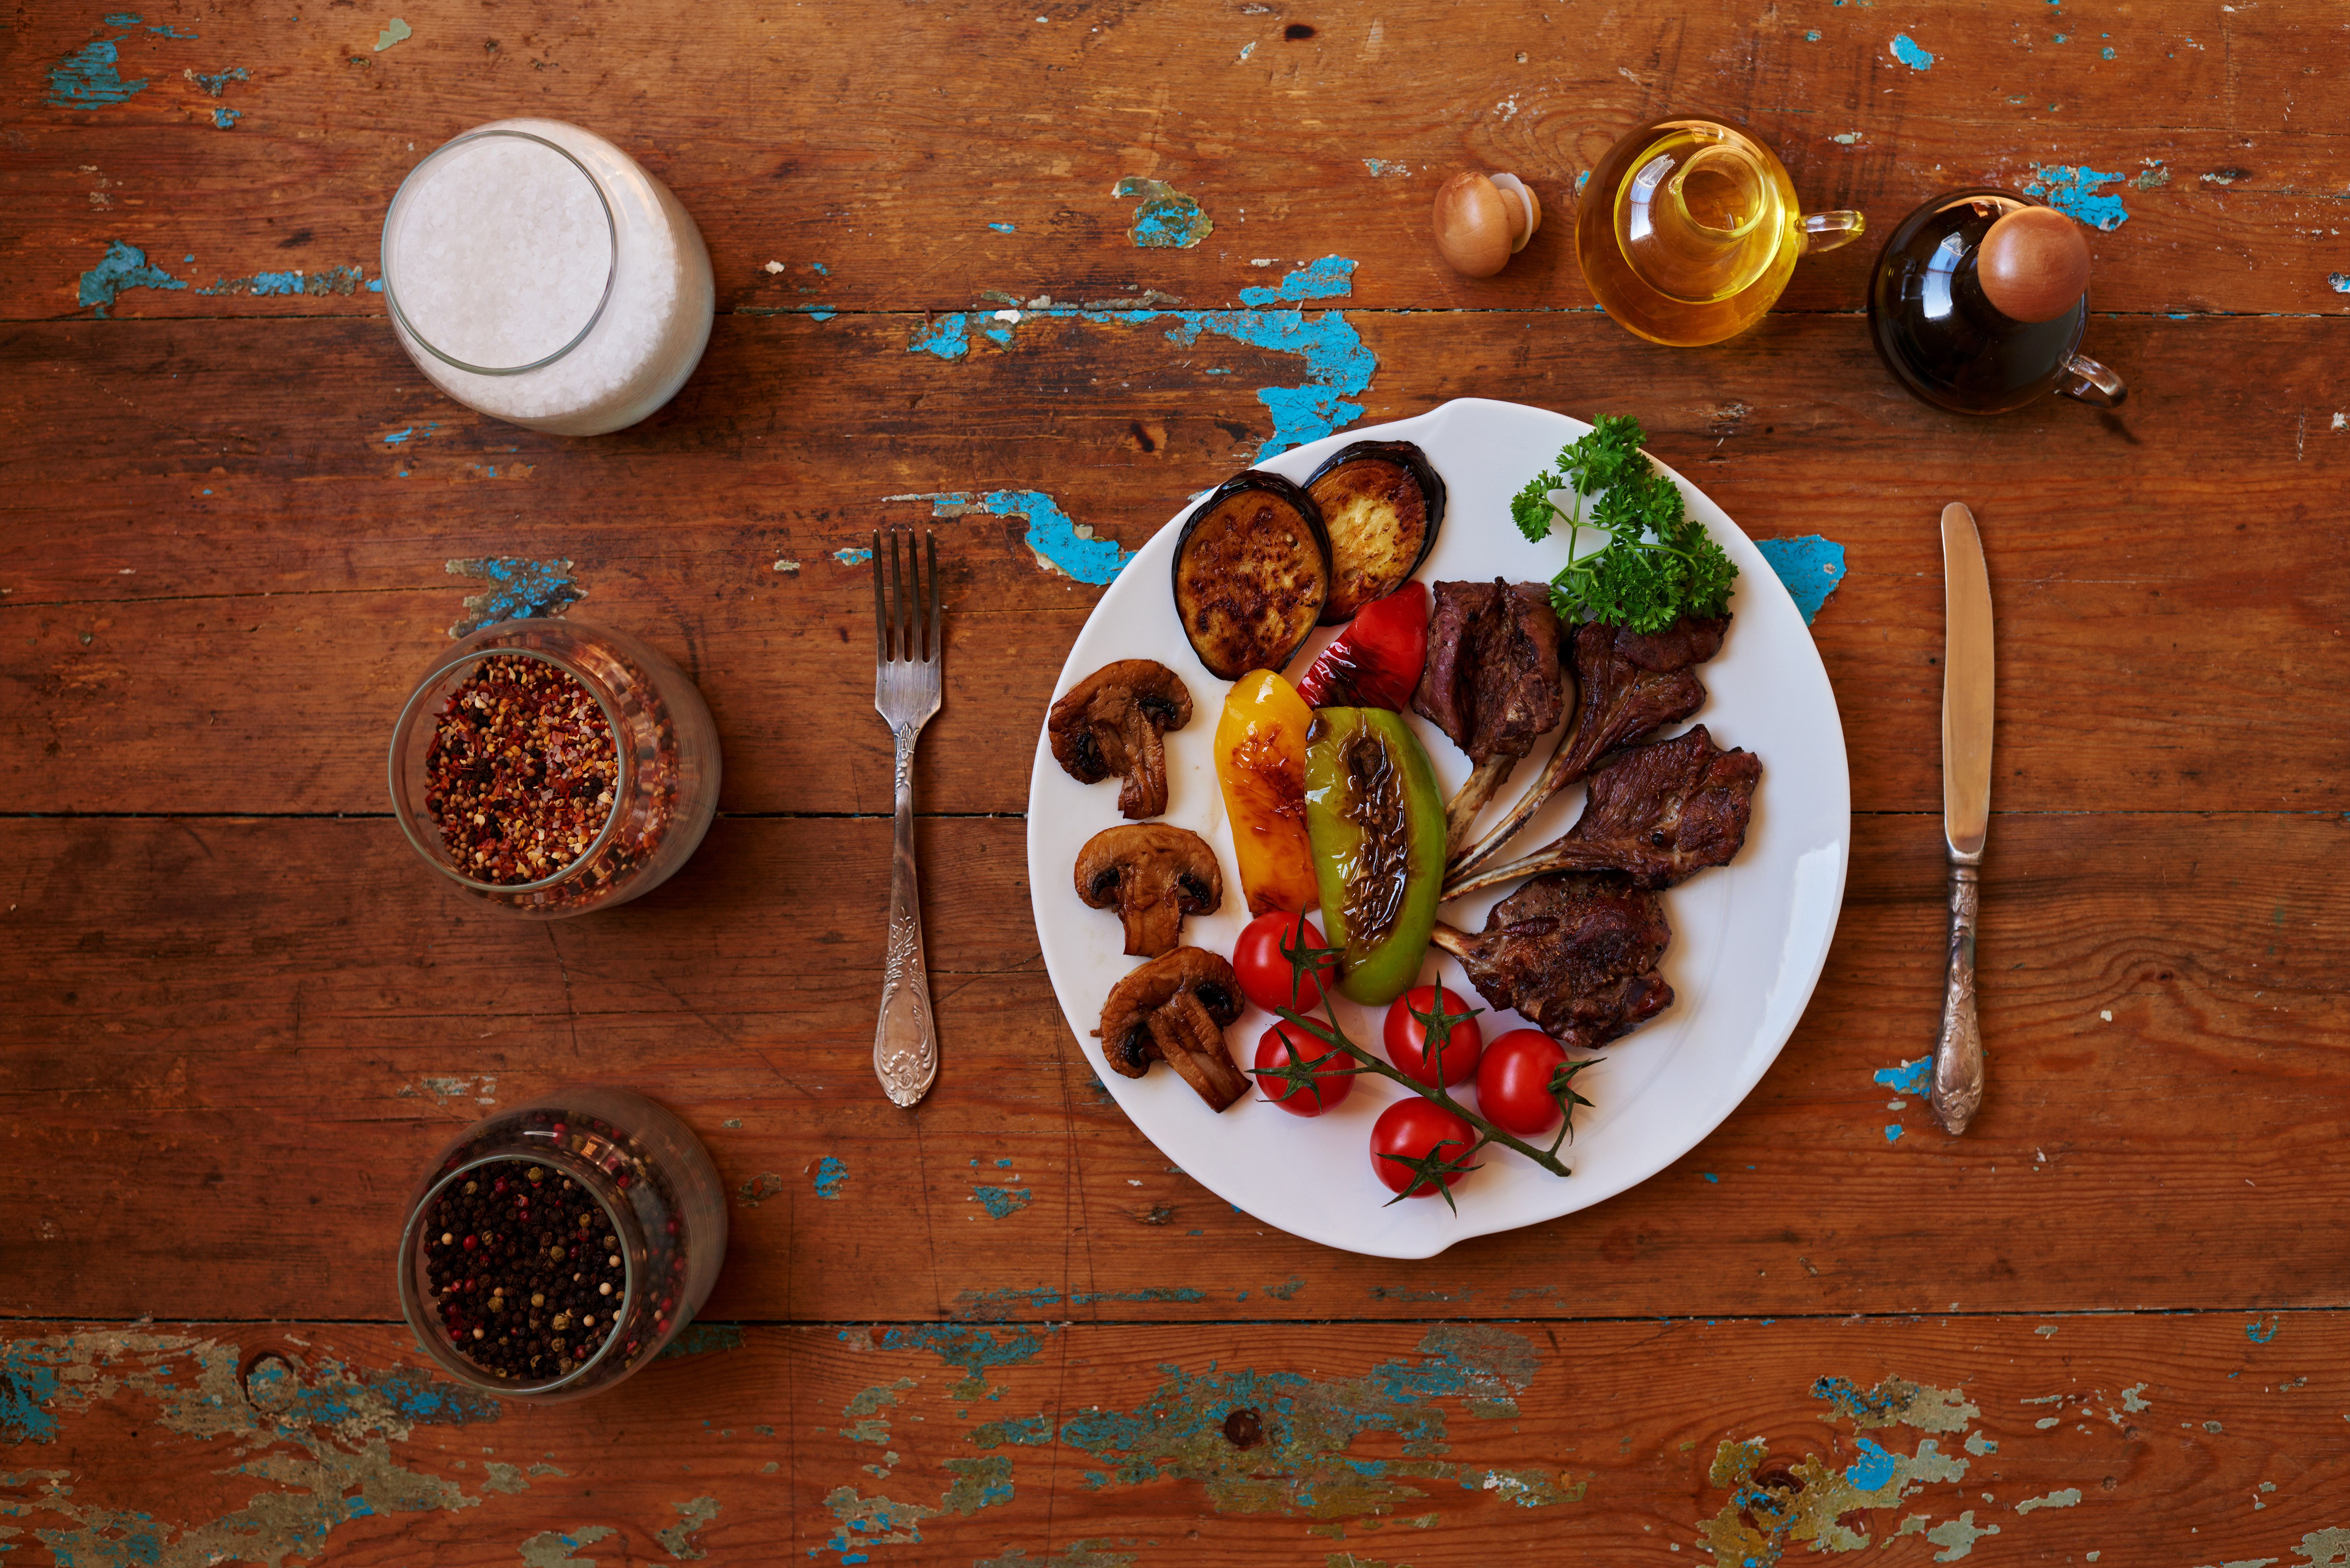 Plate of roasted veg and meat on wooden table.jpg